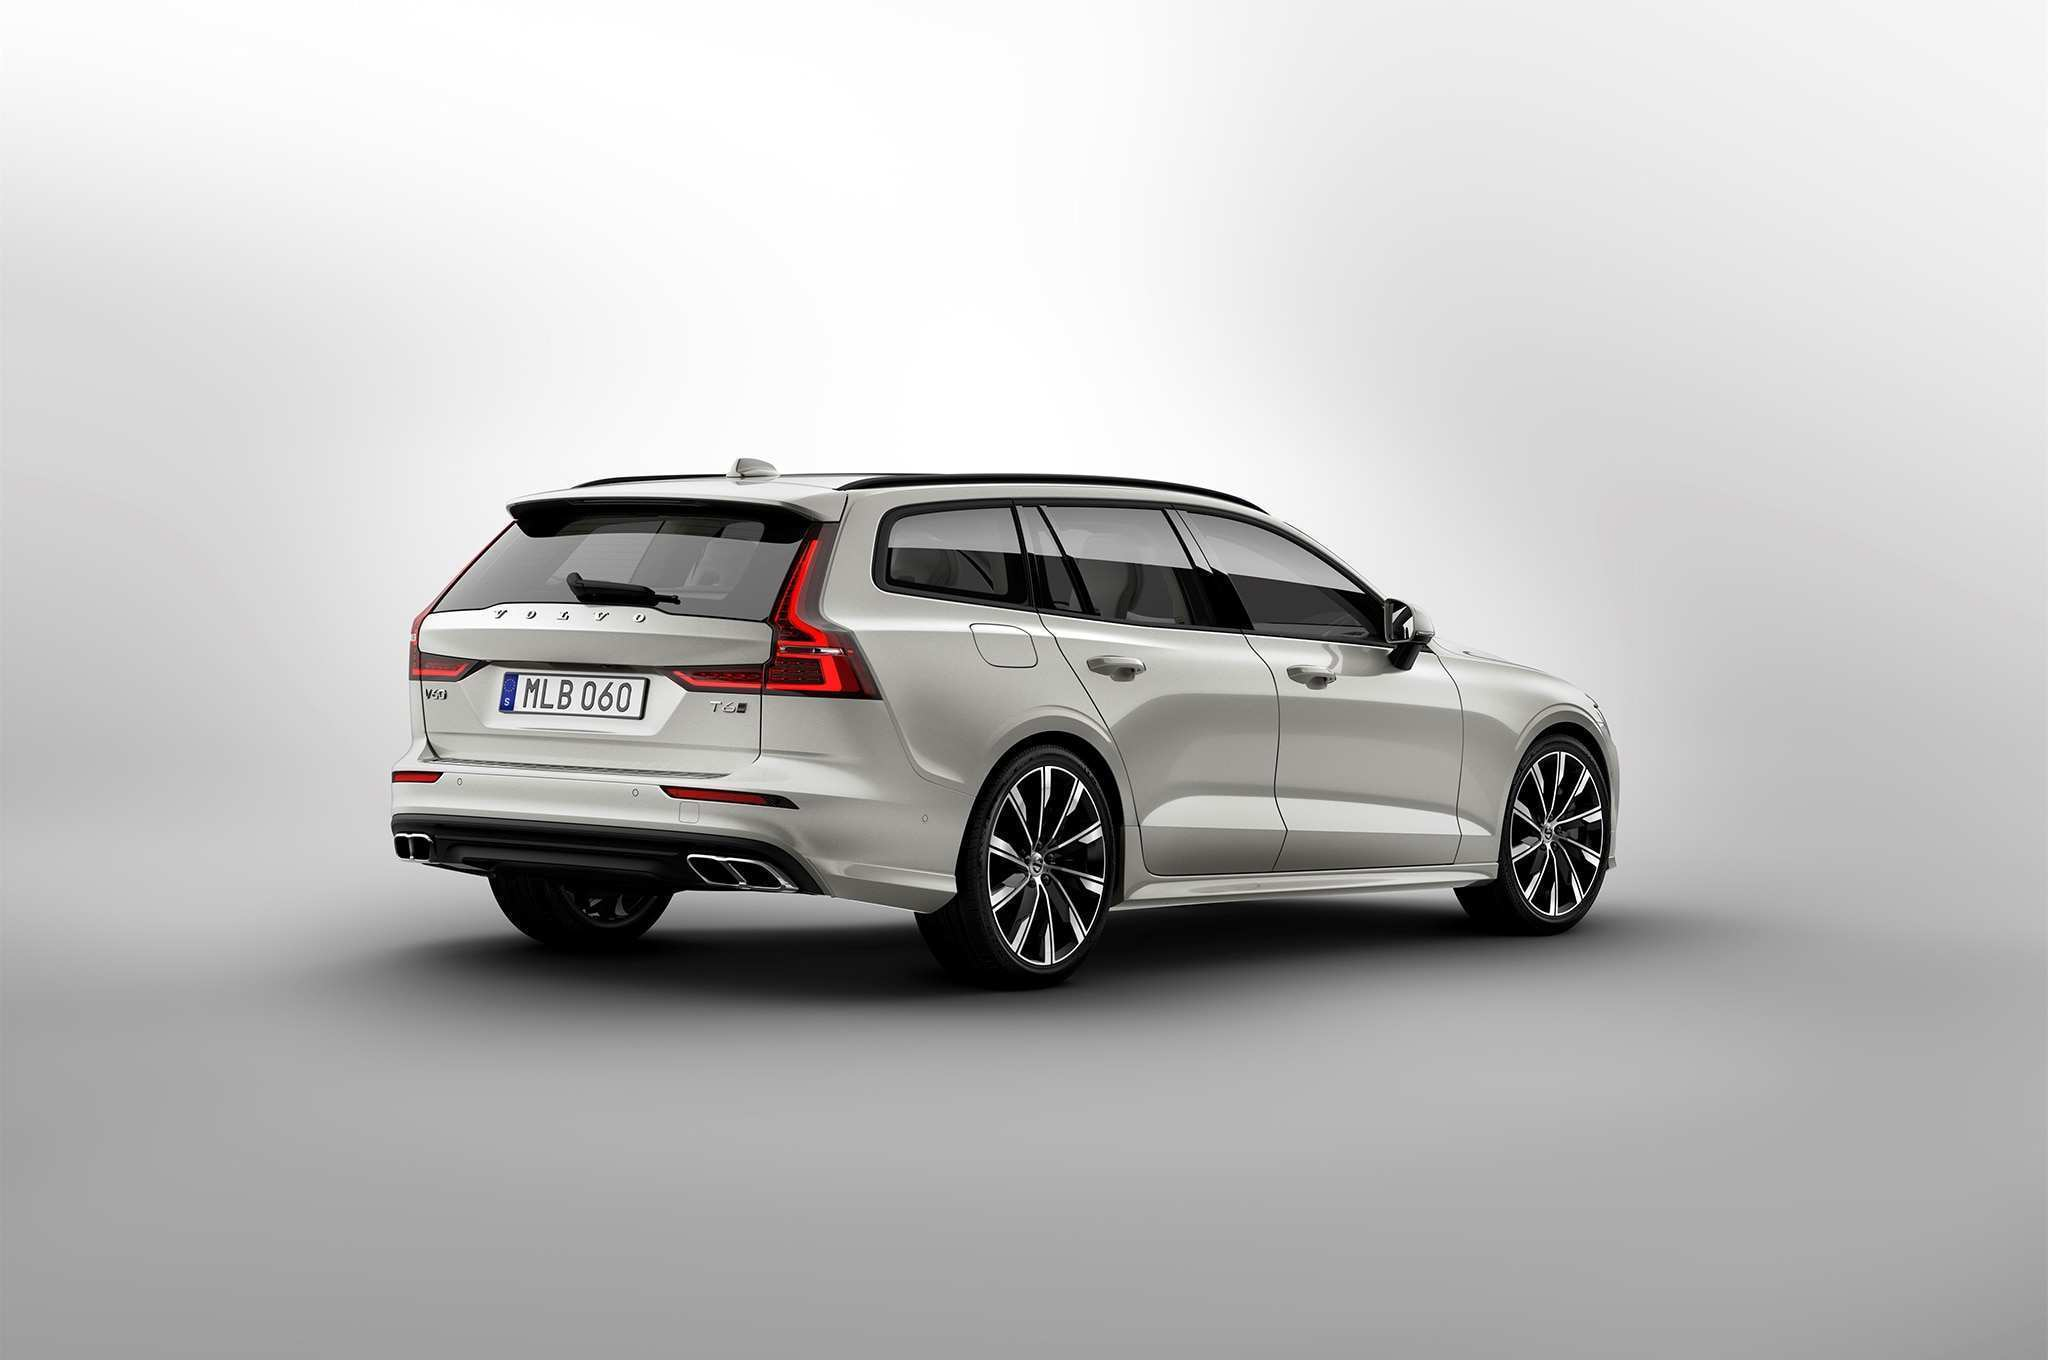 94 New 2020 Volvo V70 2018 Release with 2020 Volvo V70 2018